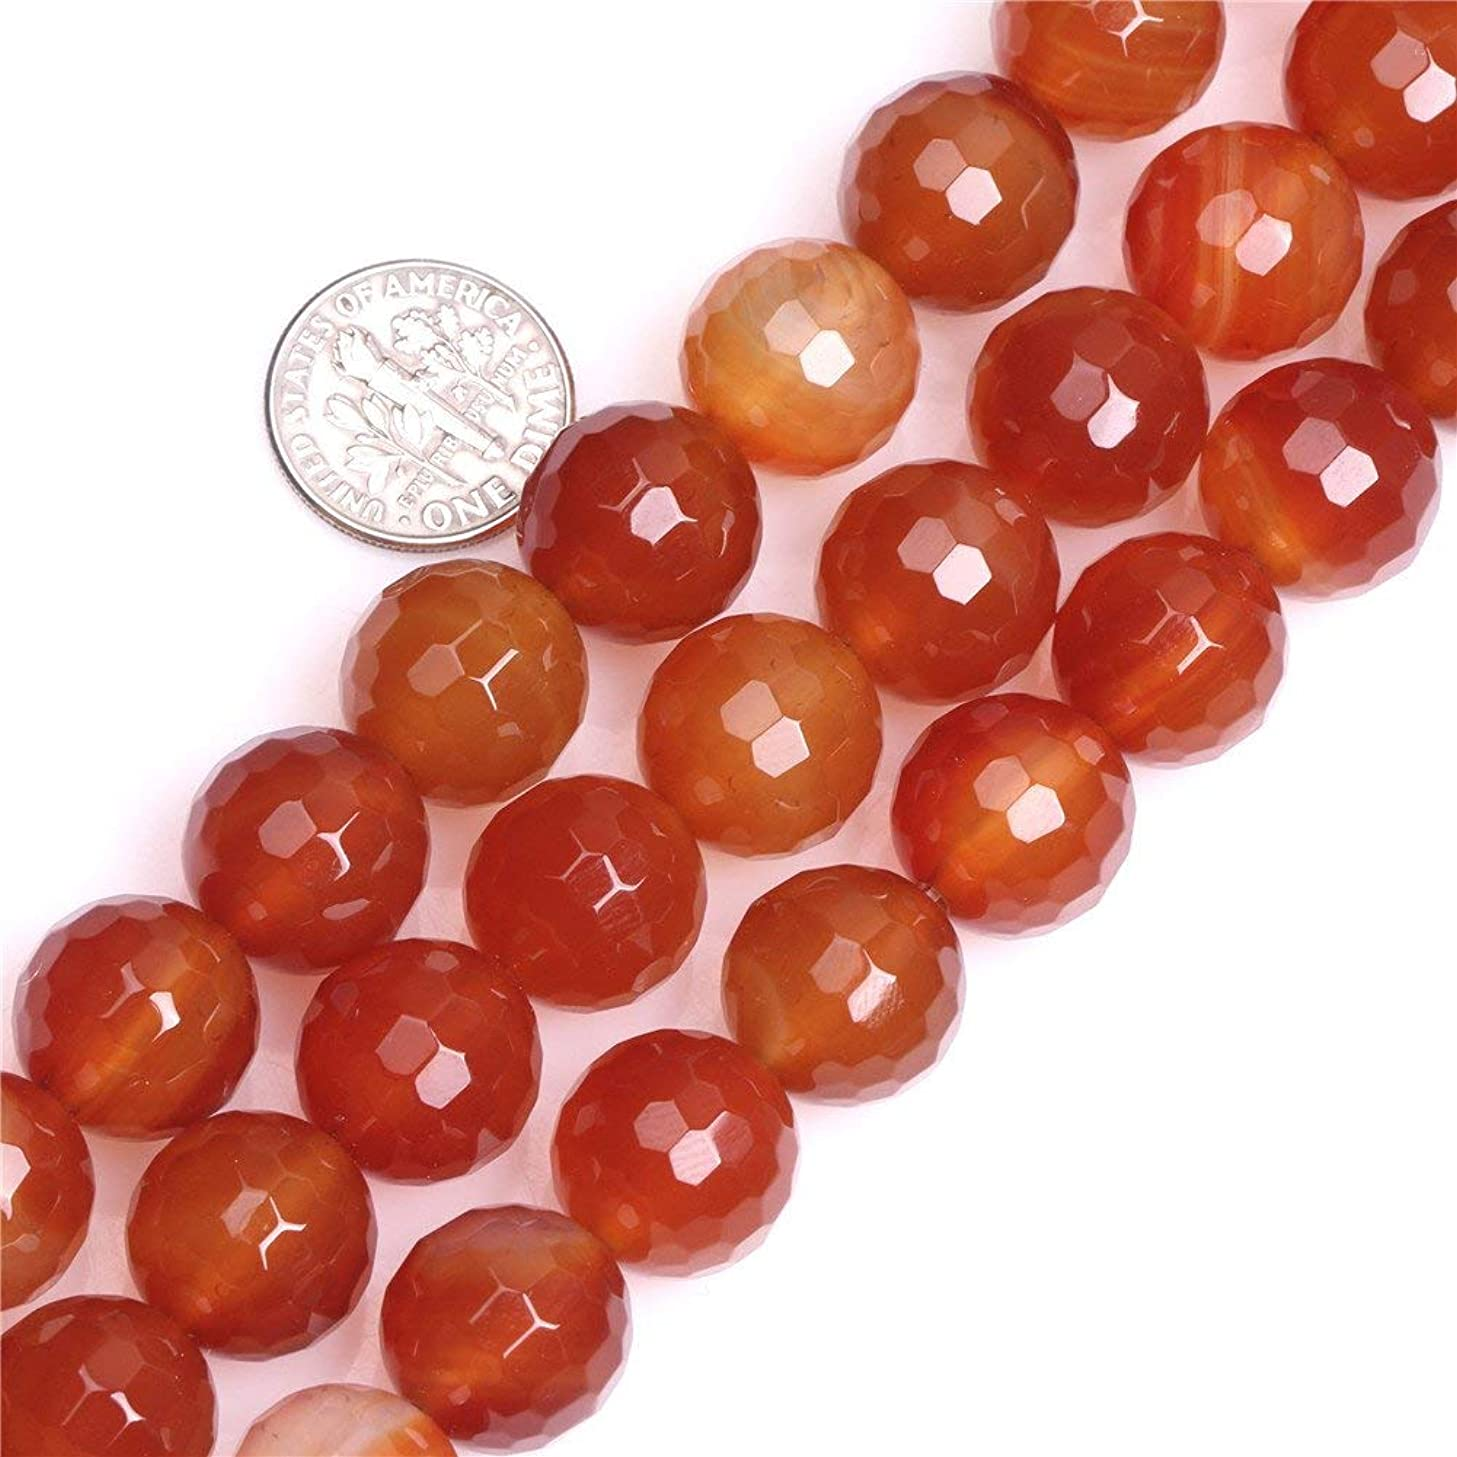 Sweet Happy Girl's 14mm Round Faceted Gemstone Red Carnelian Beads Strand 15 Inch Jewelry Making Beads